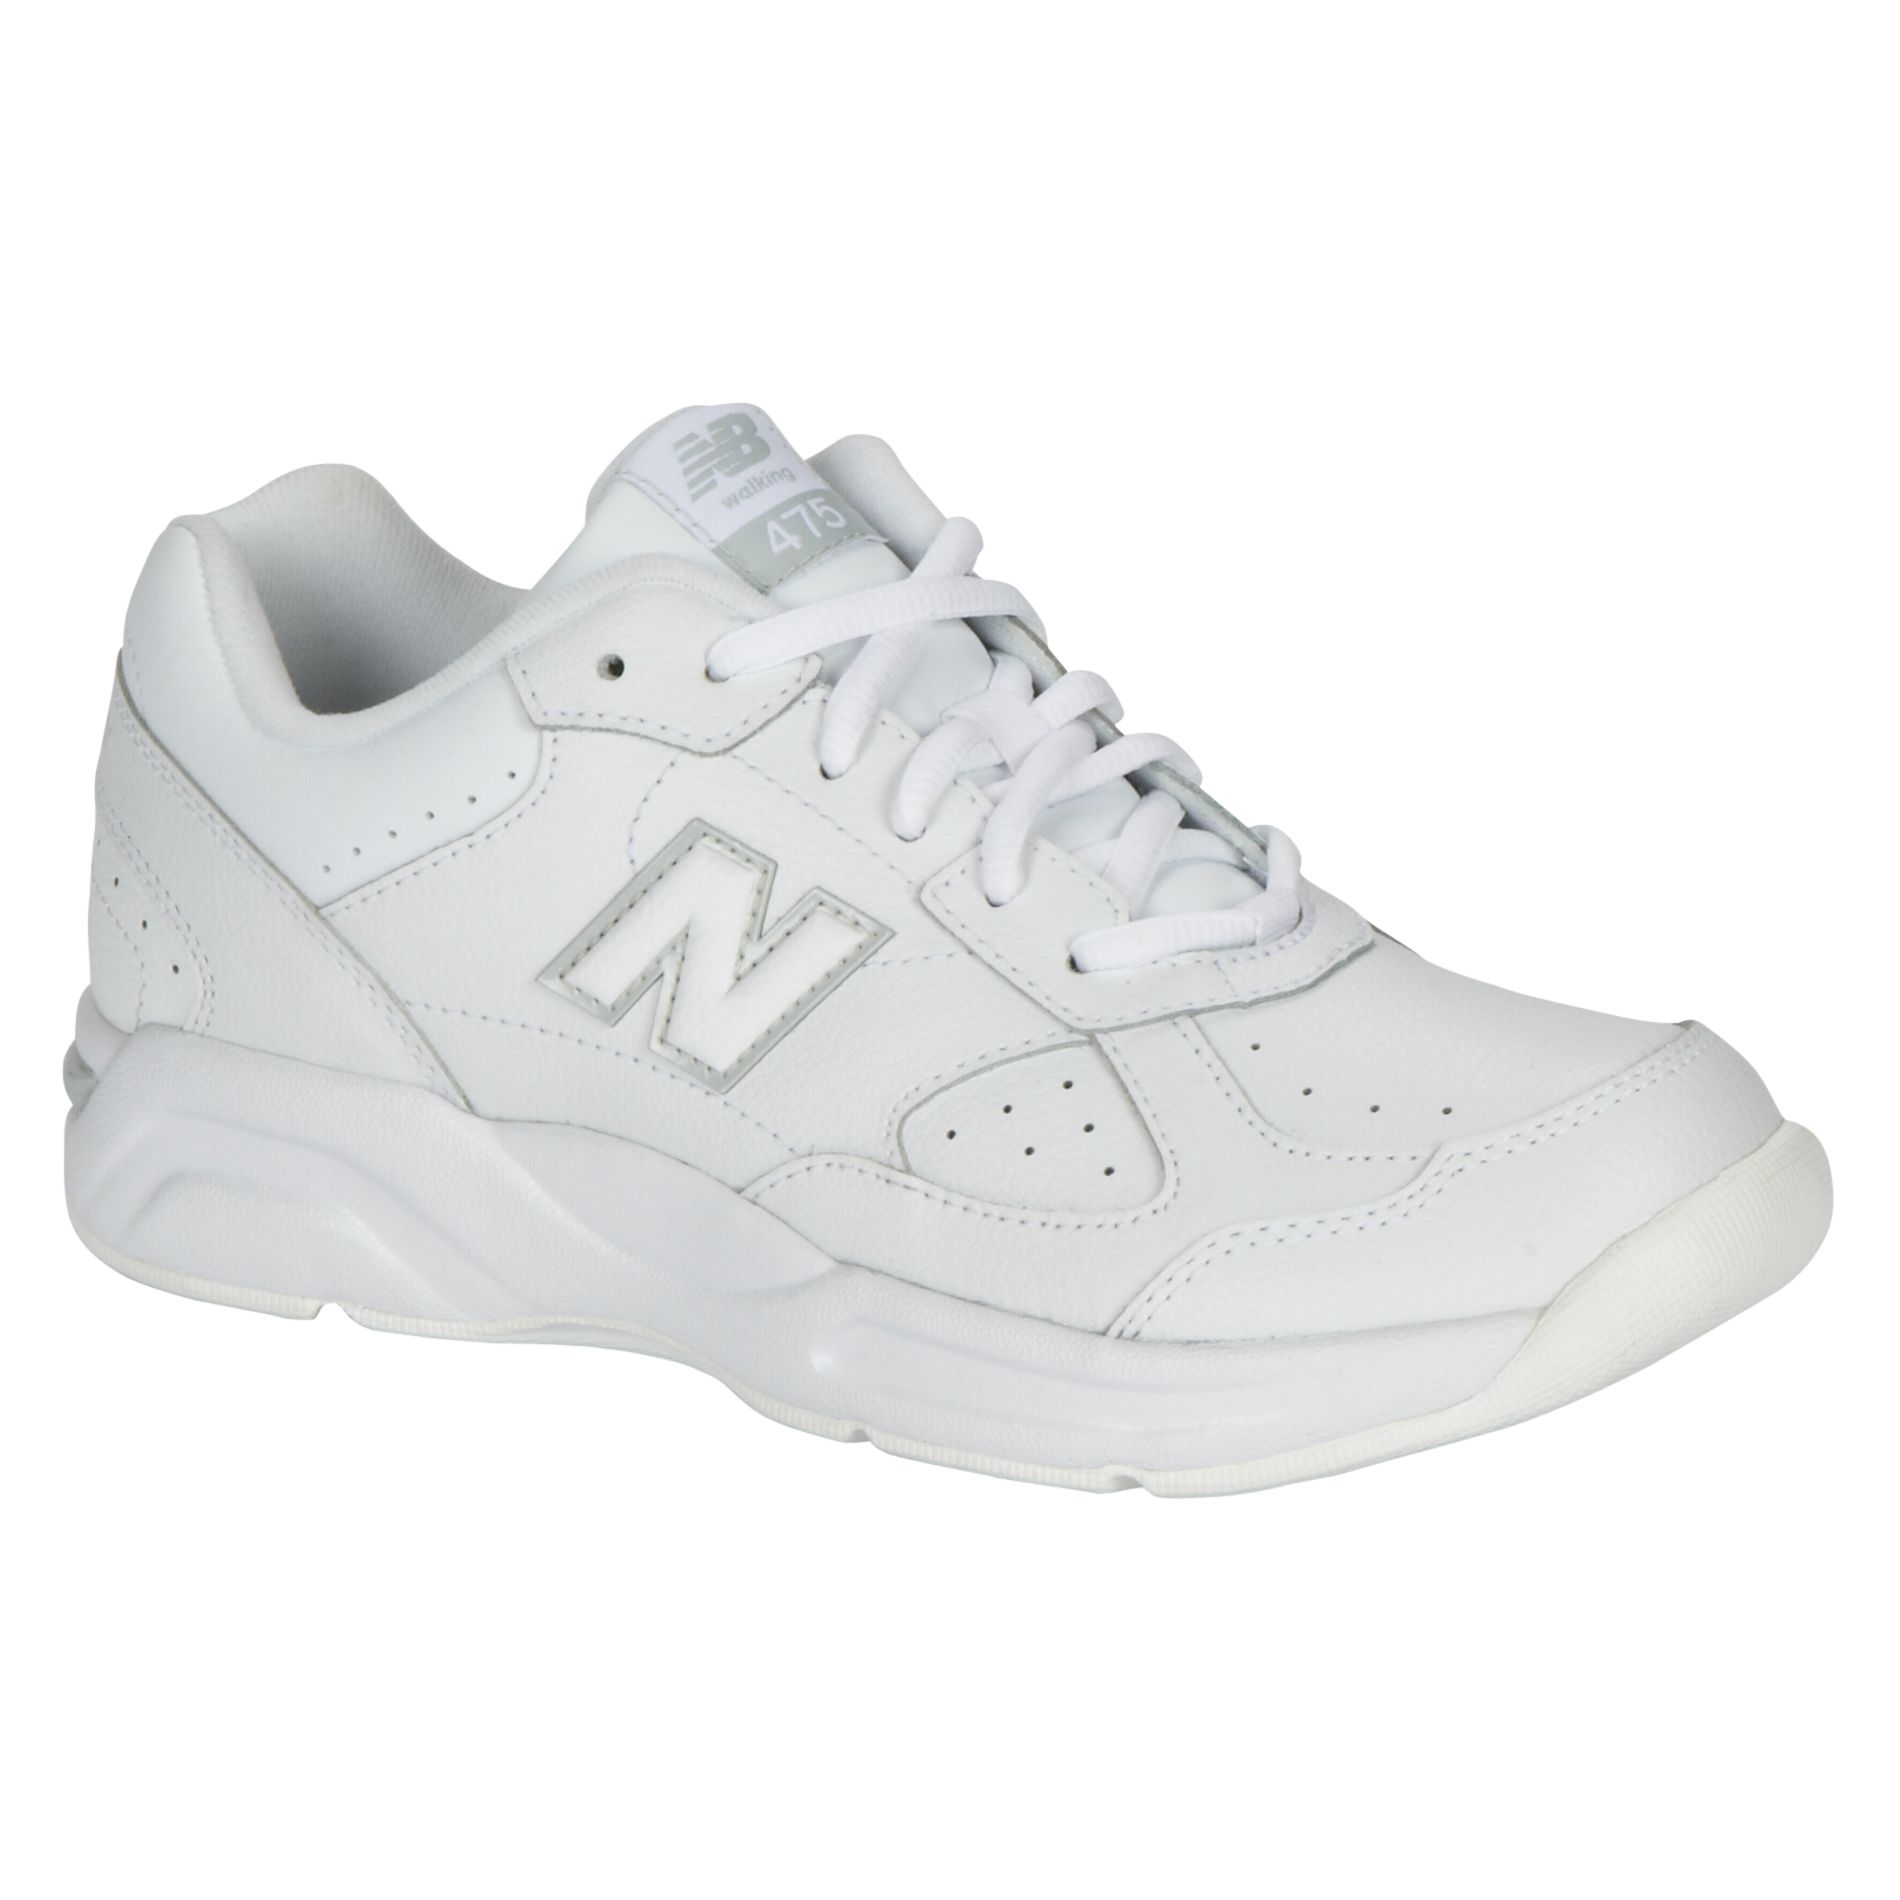 New Balance Sneakers For Women For Walking Philly Diet